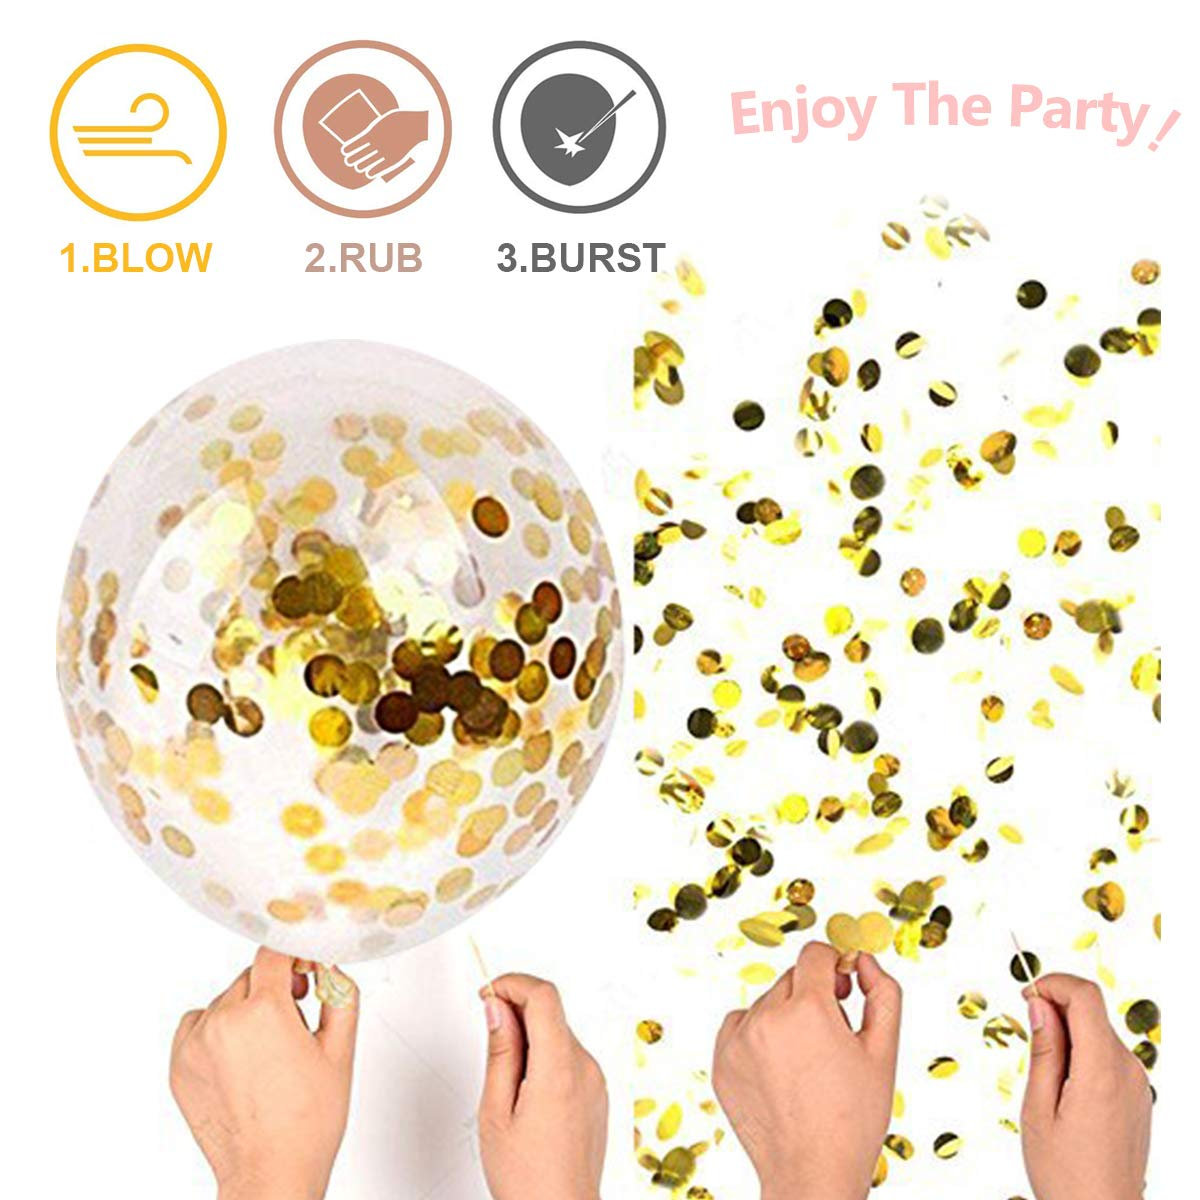 YMSZ Rose Gold Balloons /& Confetti 40pcs 12 Inch Glitter Latex Balloons for Baby Bridal Shower Birthday Party Decorations colorful